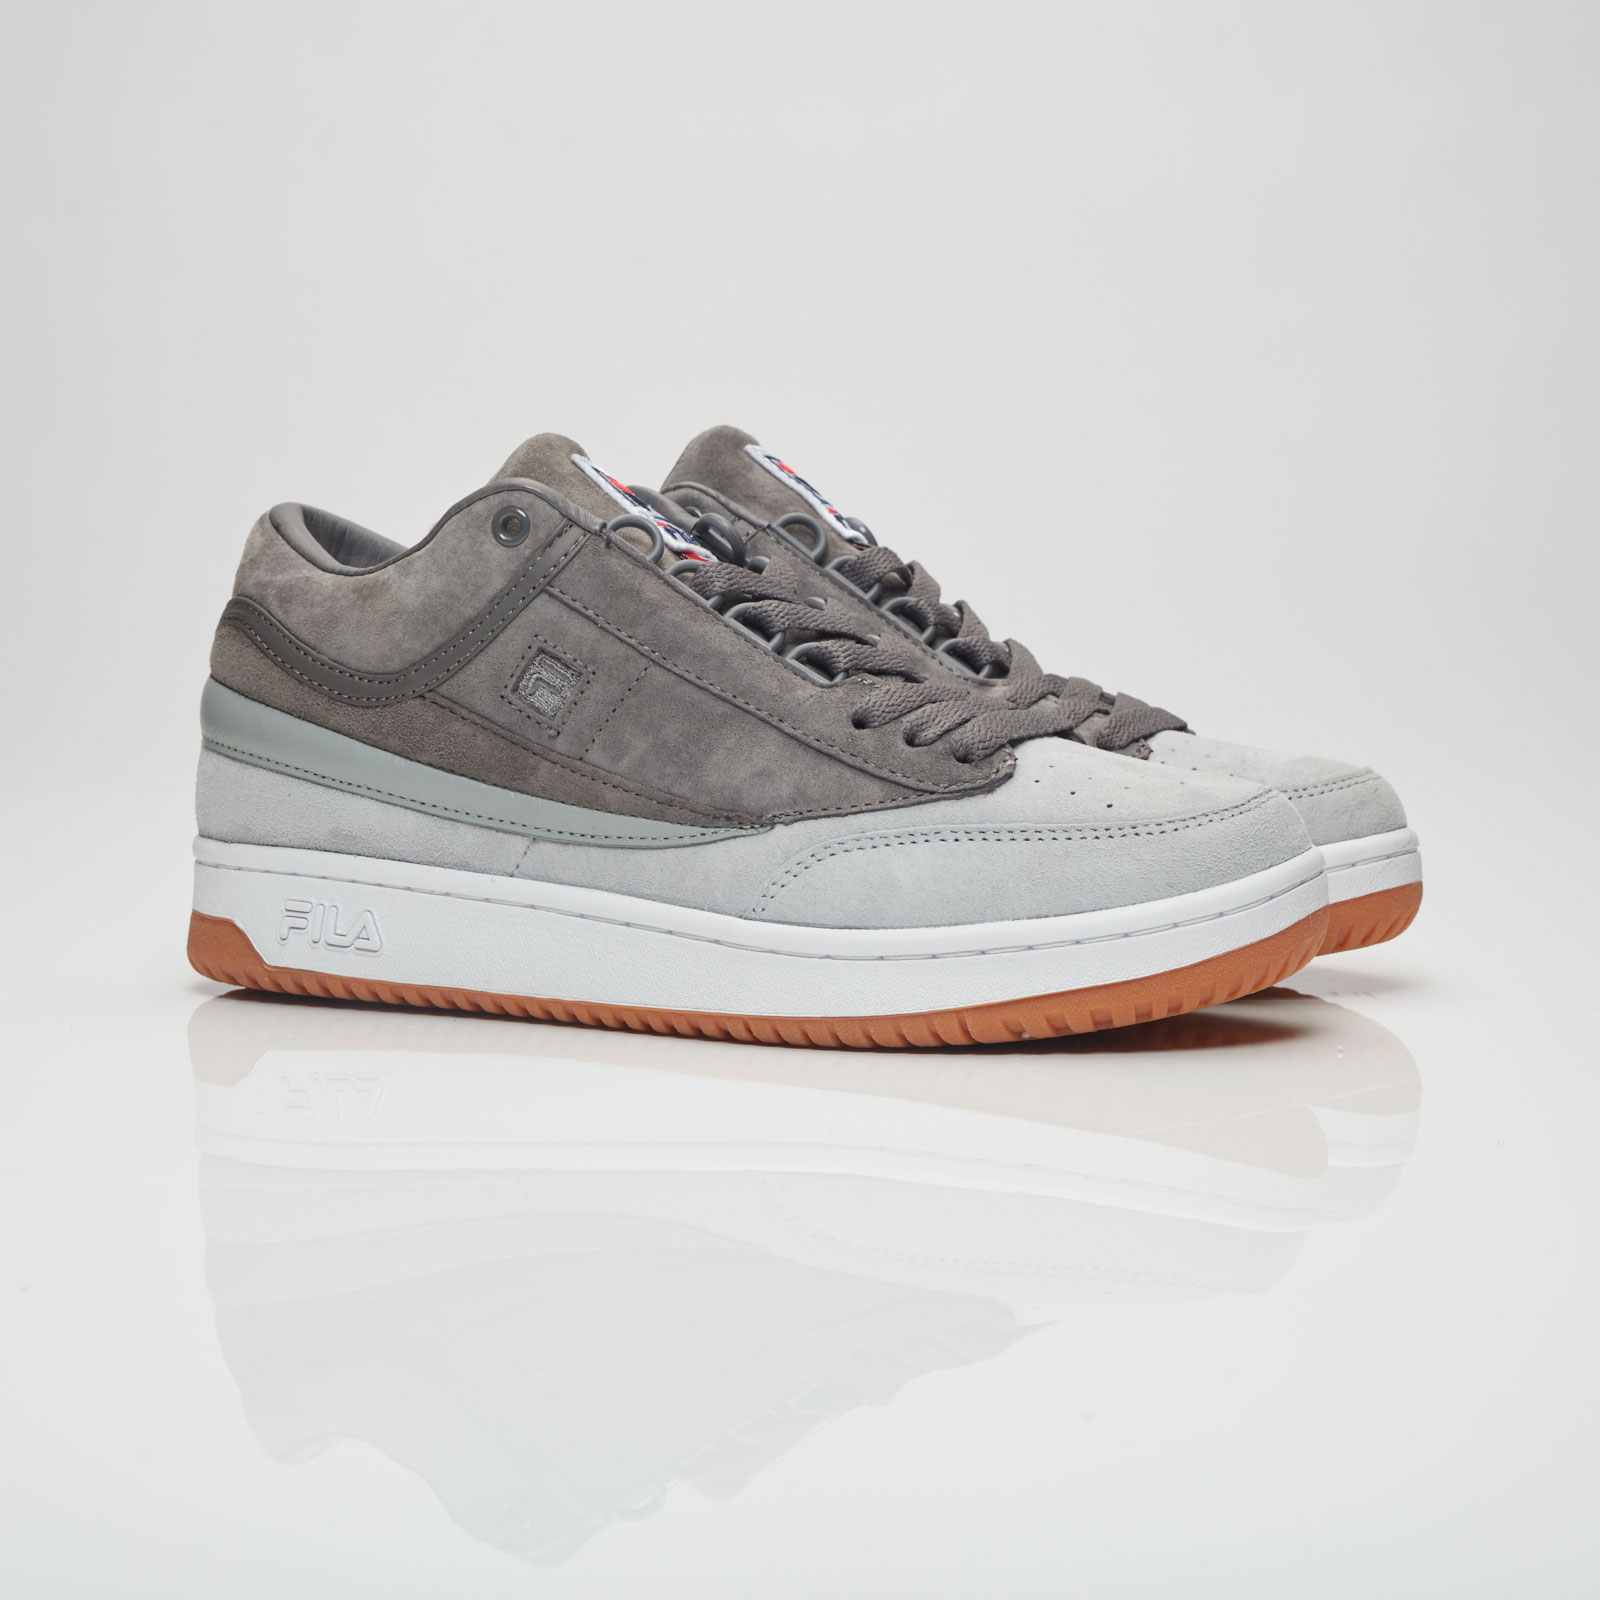 fila t1 mid Sale,up to 57% Discounts